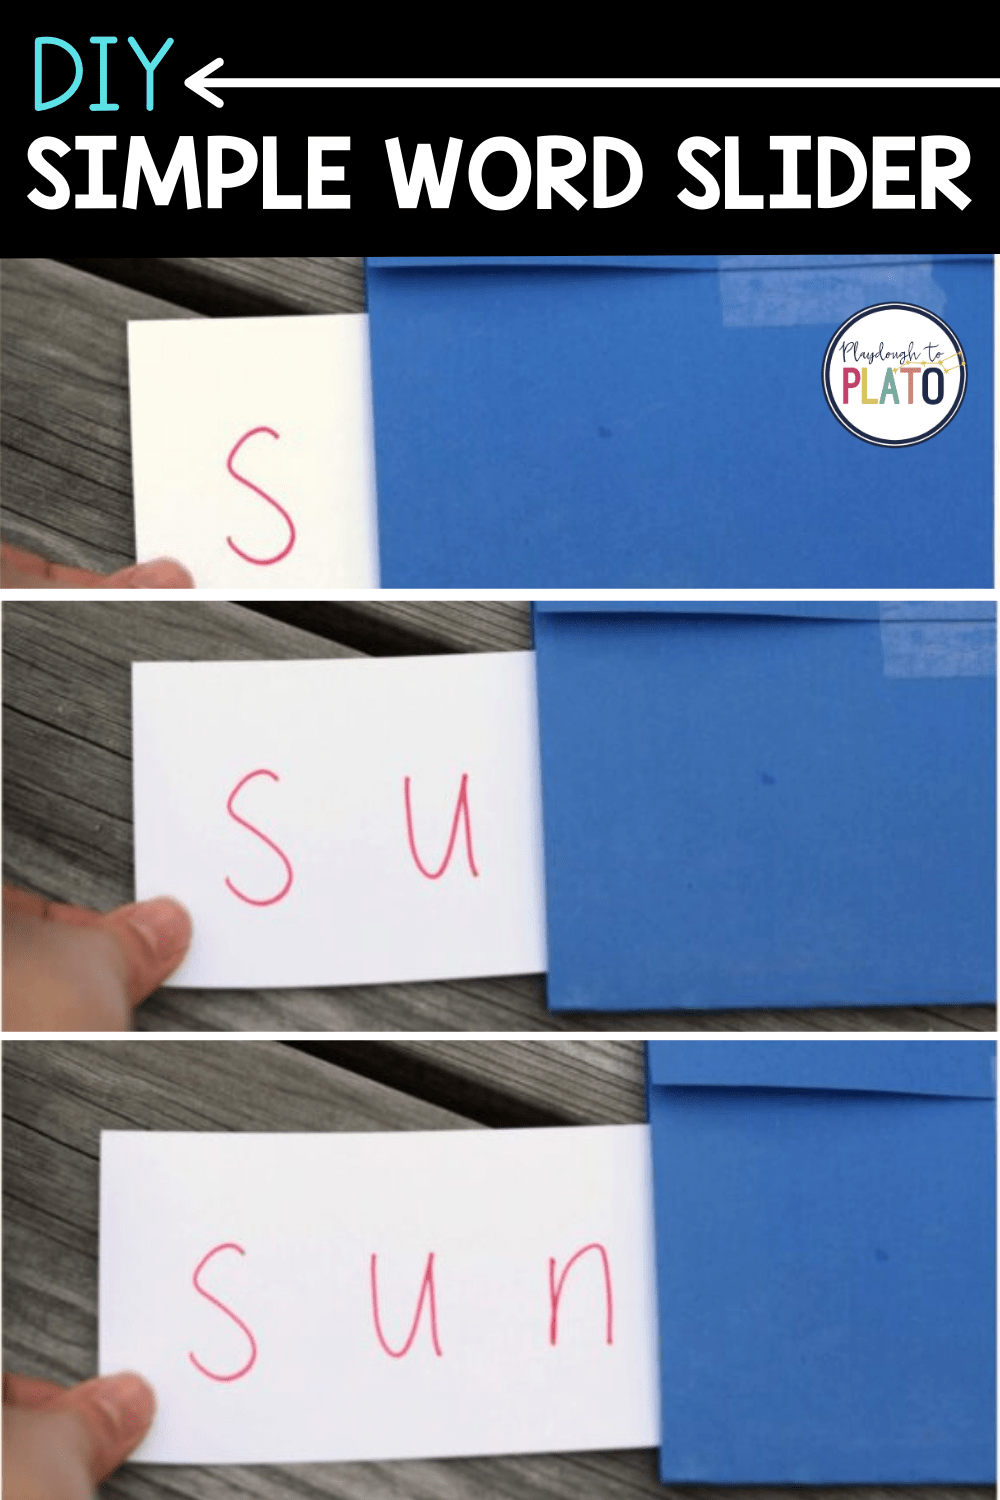 The Super Simple Word Slider